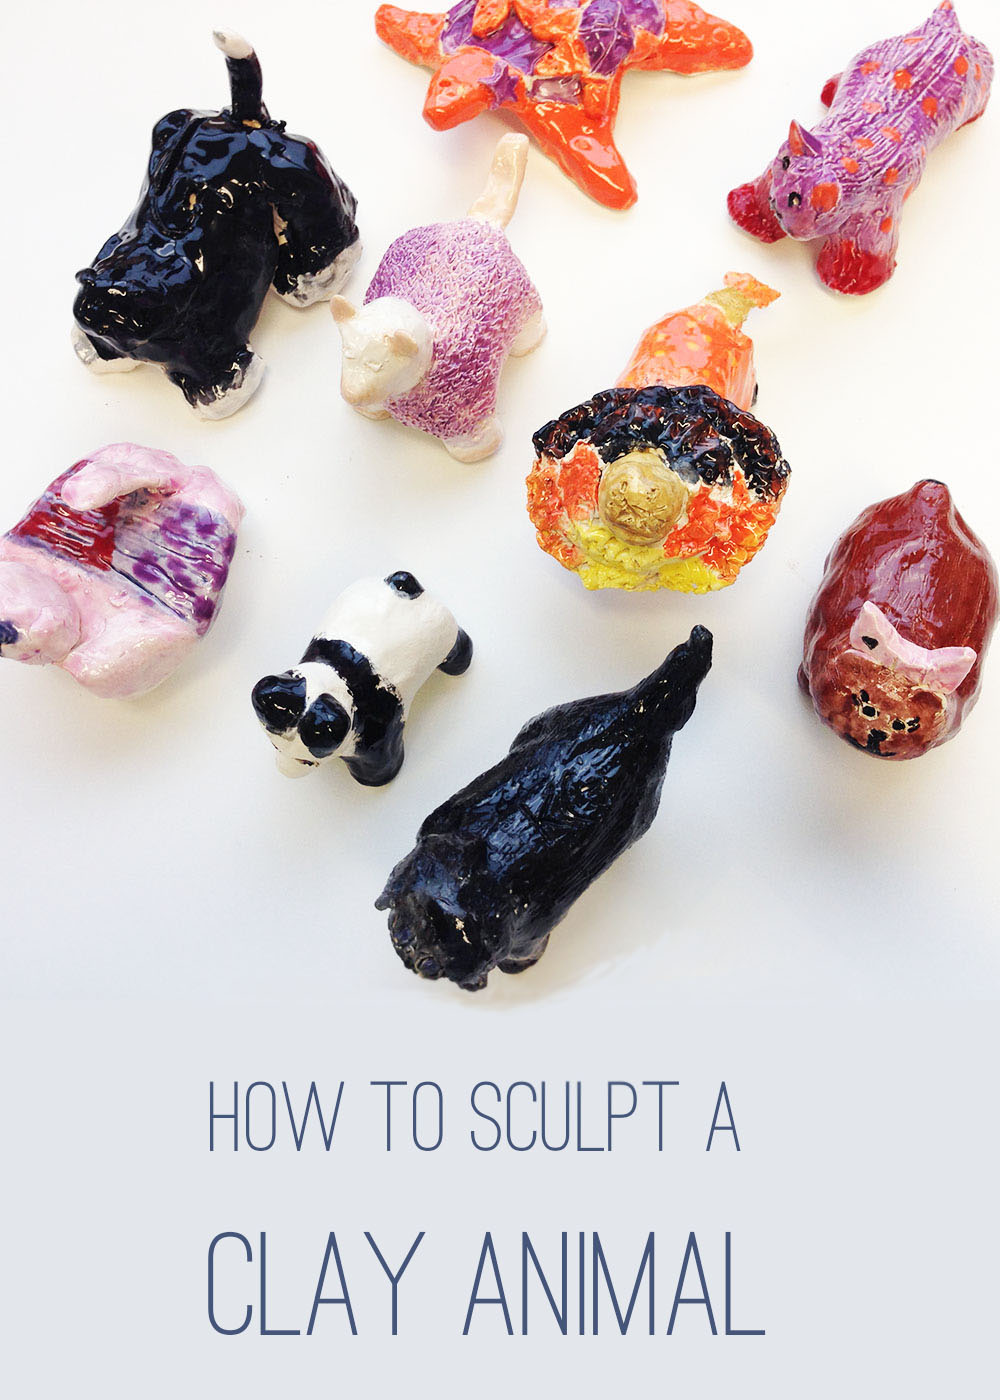 How to sculpt a clay animal